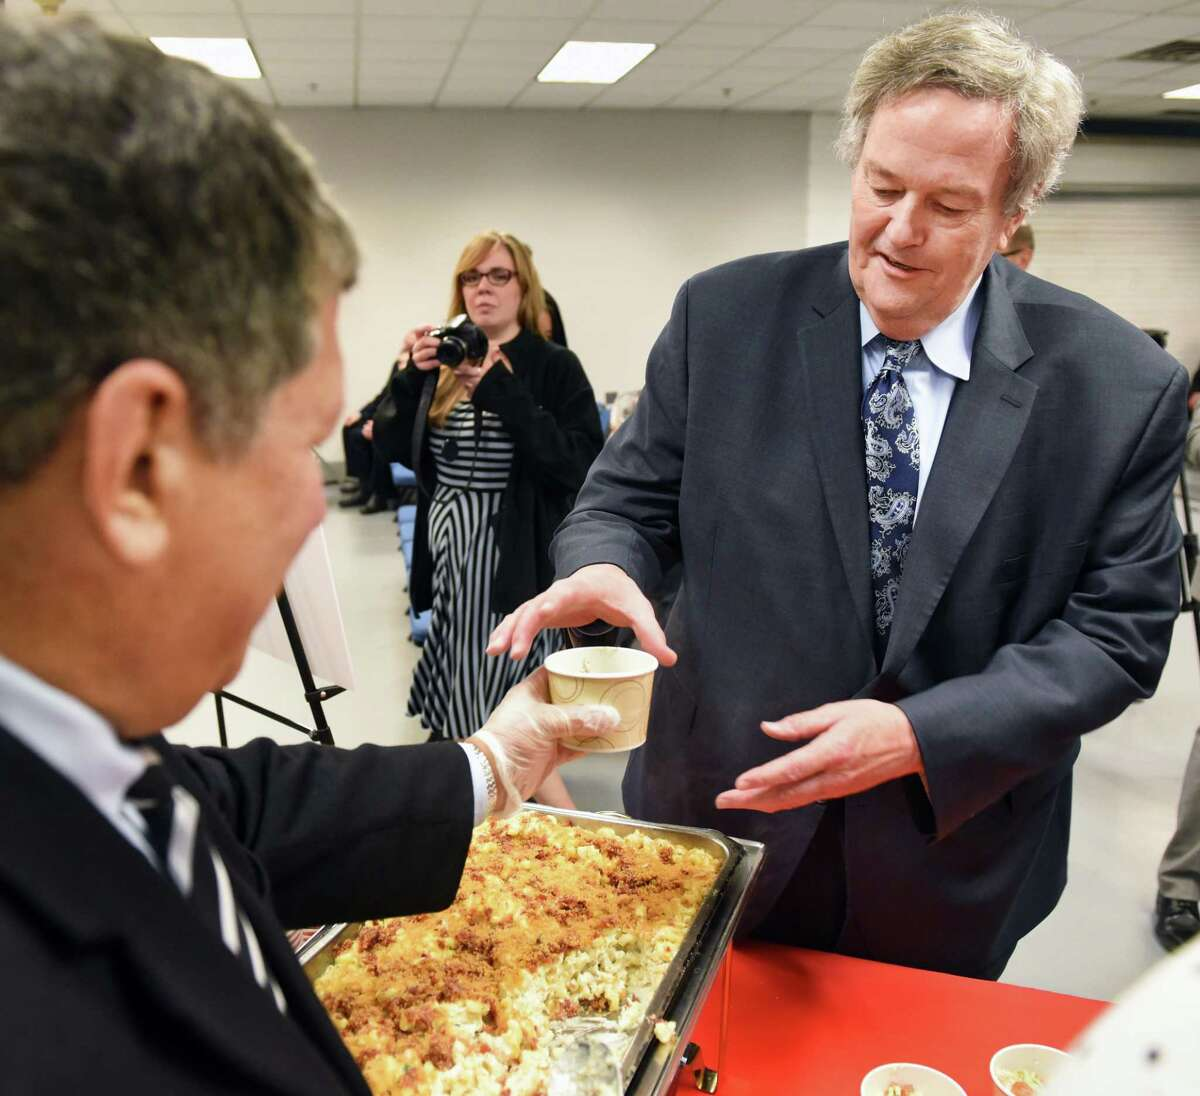 Angelo Mazzone of Mazzone Hospitality, left, serves MAAC Commissioner Rich Ensor a dish of